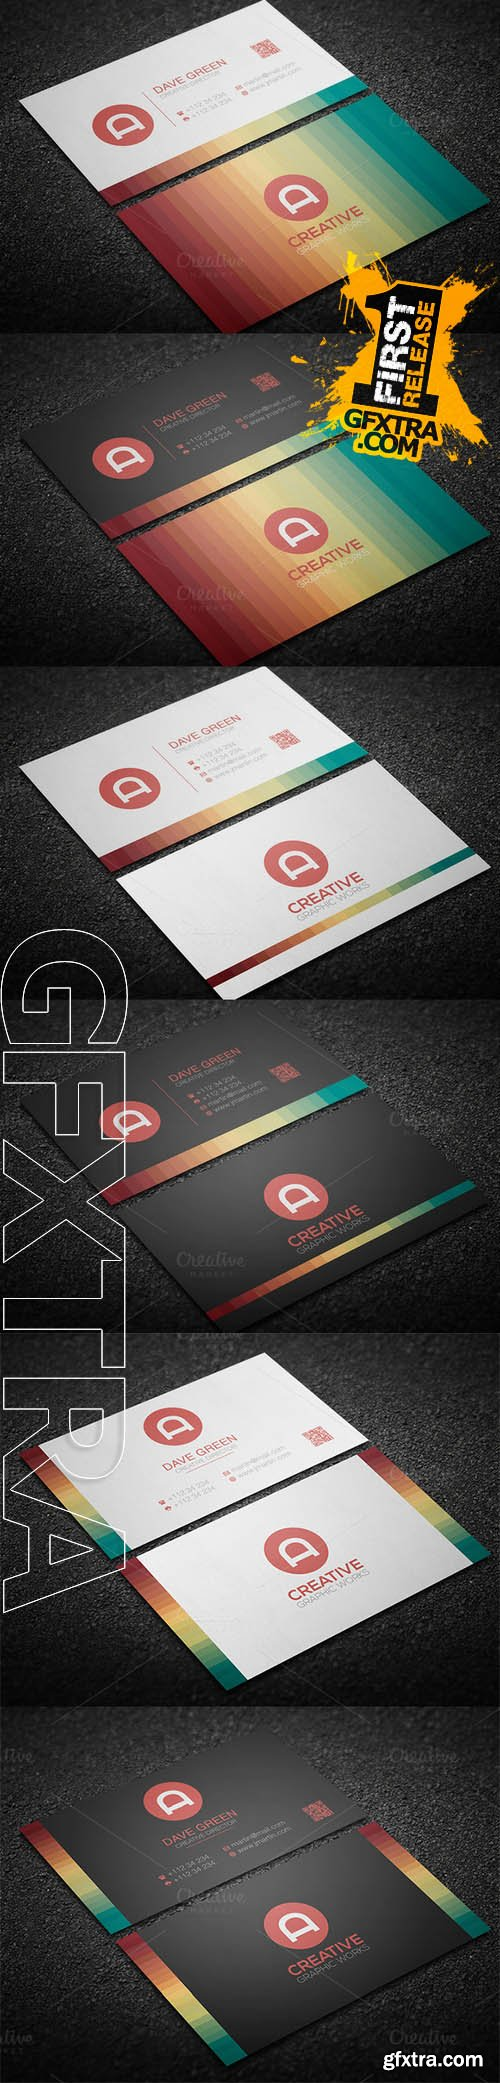 3 in 1 Clean Business Card - CM 190780